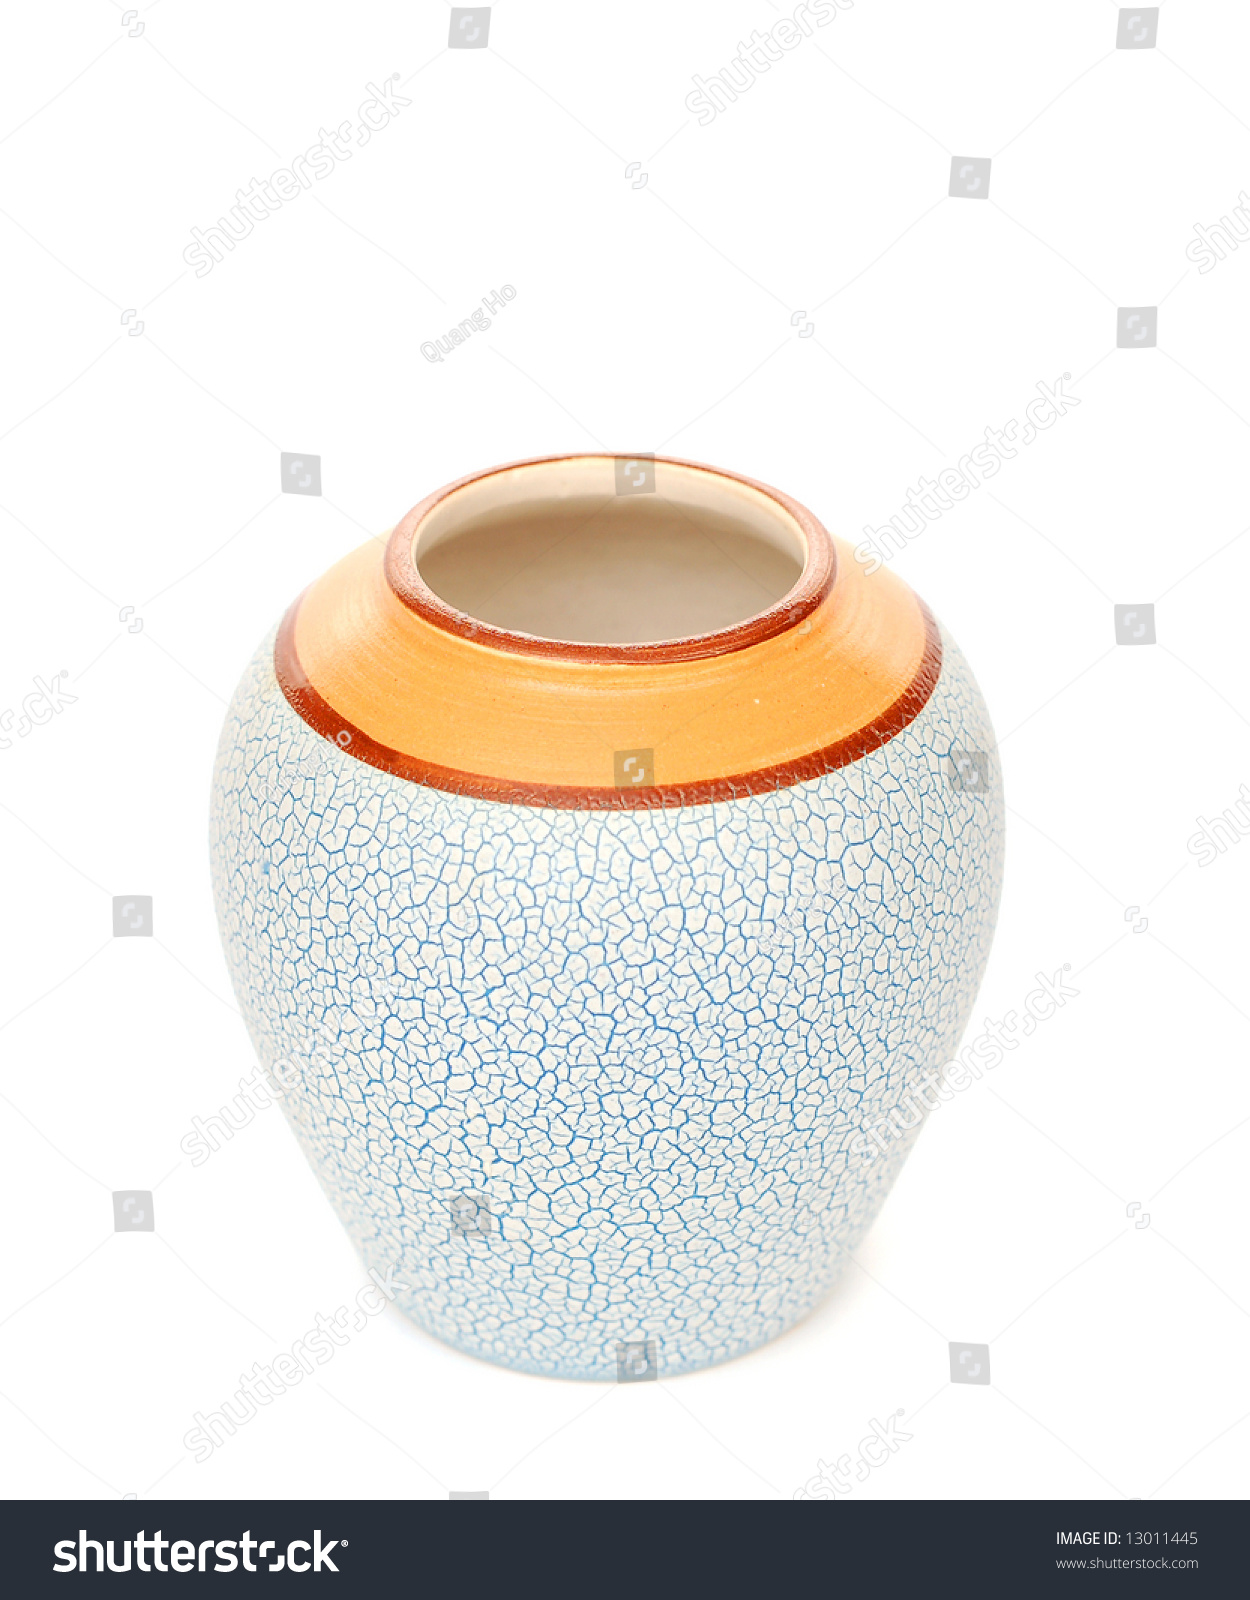 Empty Vase For Decoration Stock Photo 13011445 Shutterstock